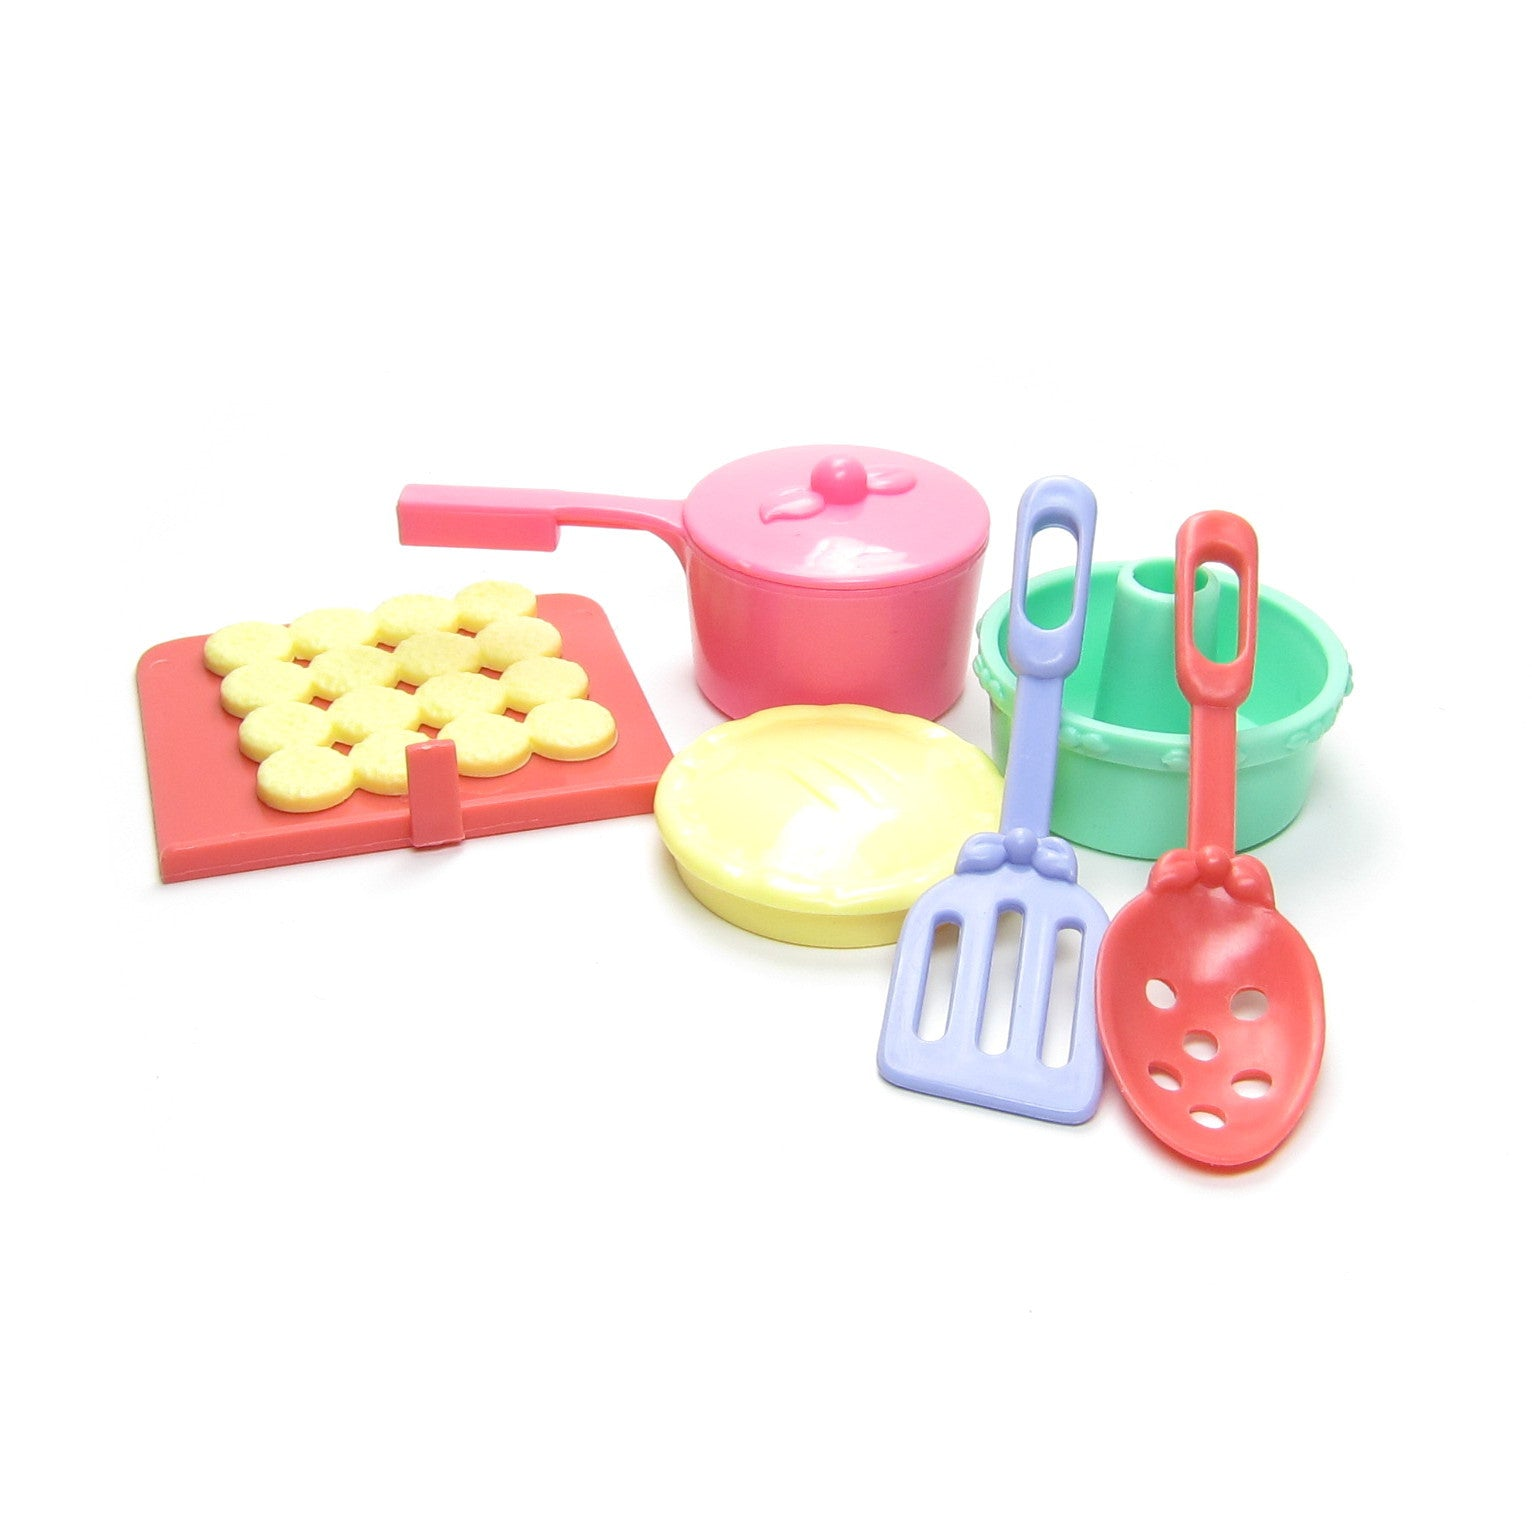 Time & Bake Stove Playset Vintage Cherry Merry Muffin Kitchen Toys ...